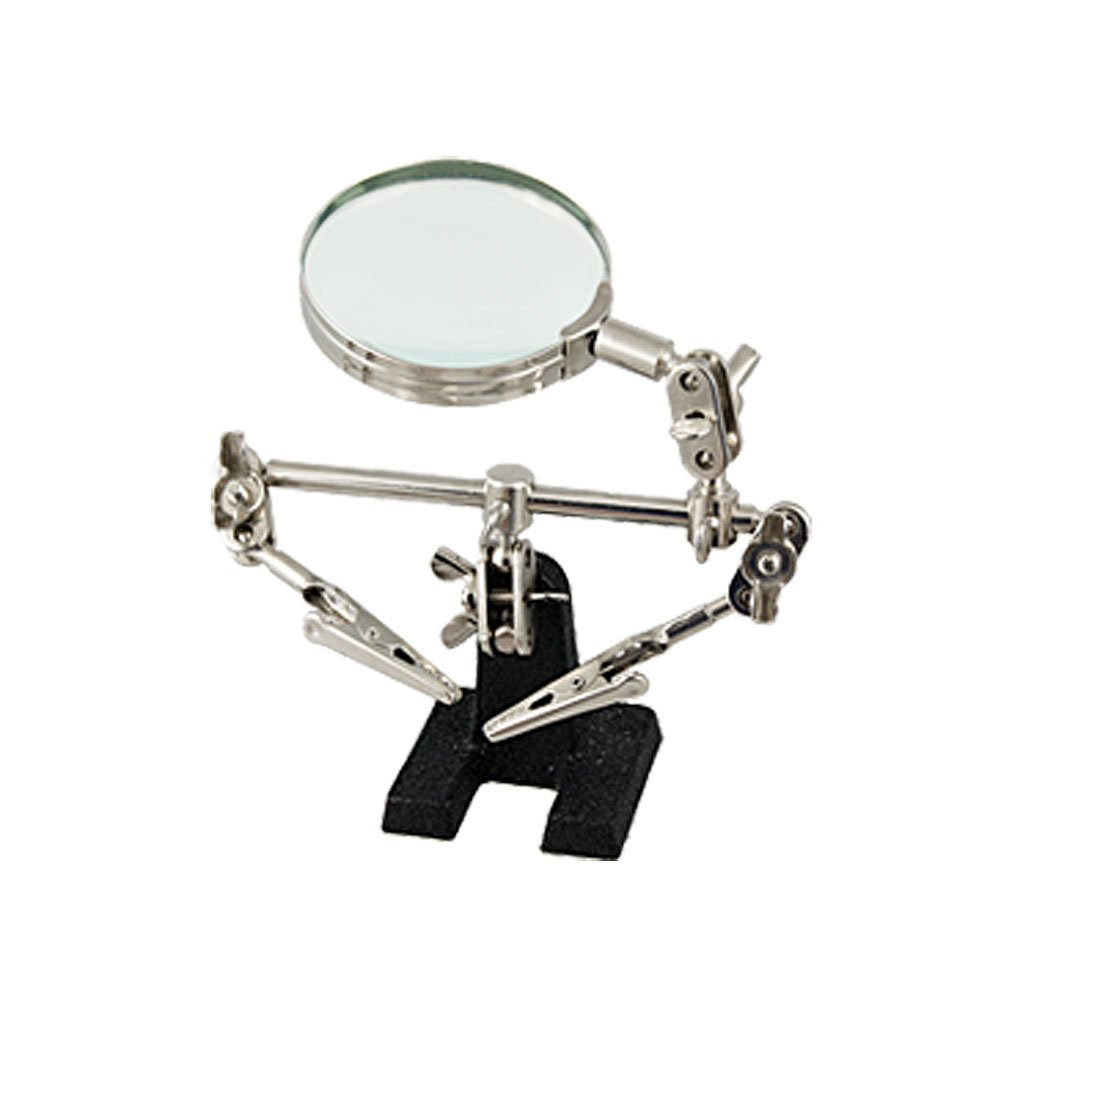 Black Stand Rotary 2.5'' Lens Magnifying Glass w Alligator Clips